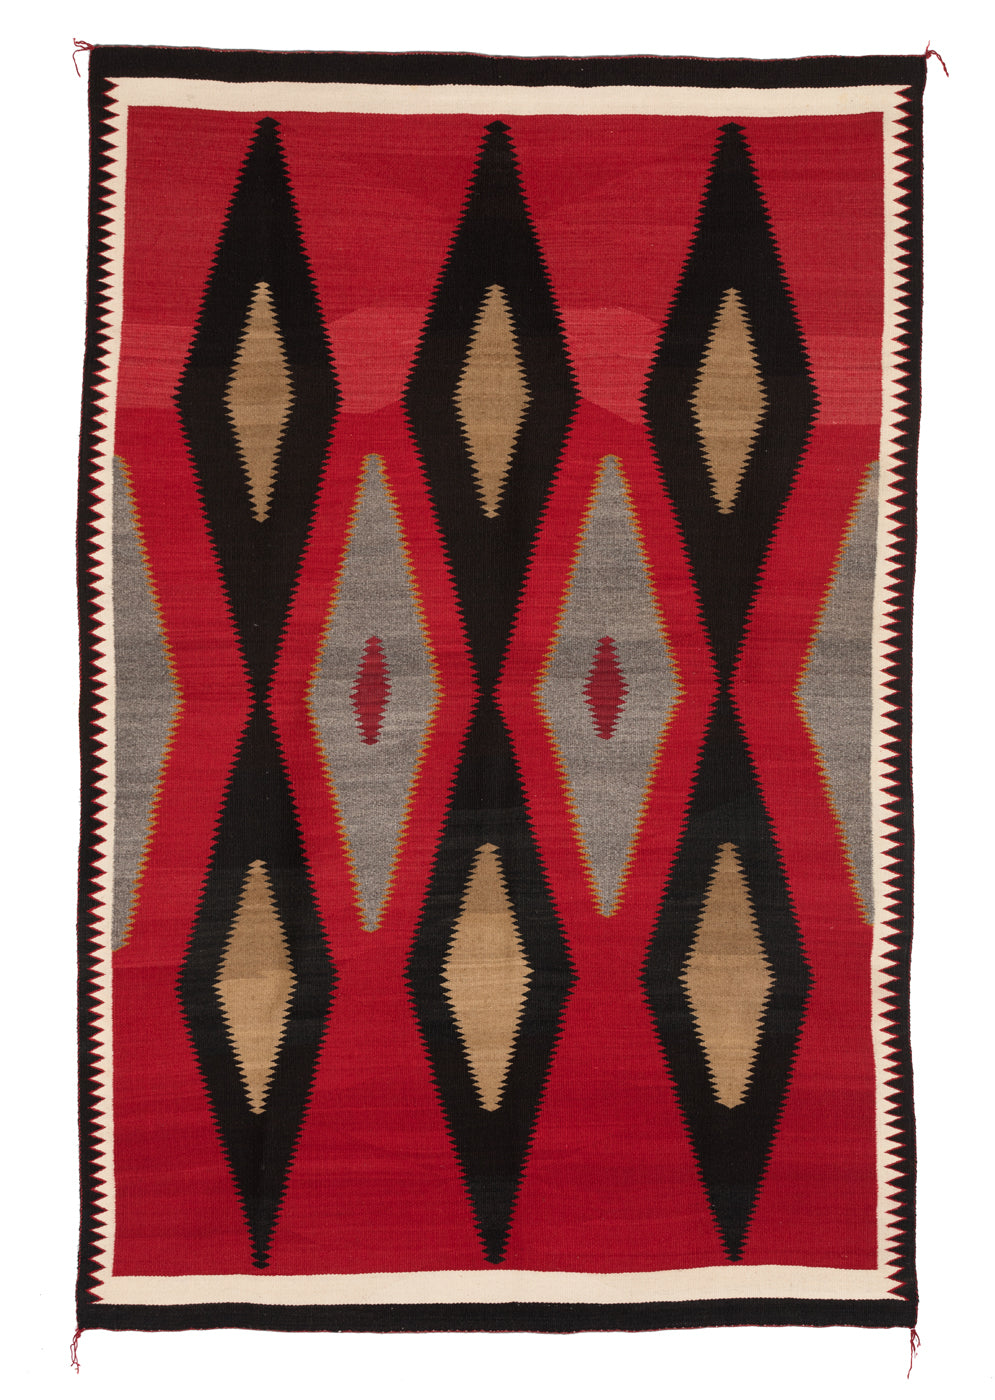 Historic Crystal Navajo rug